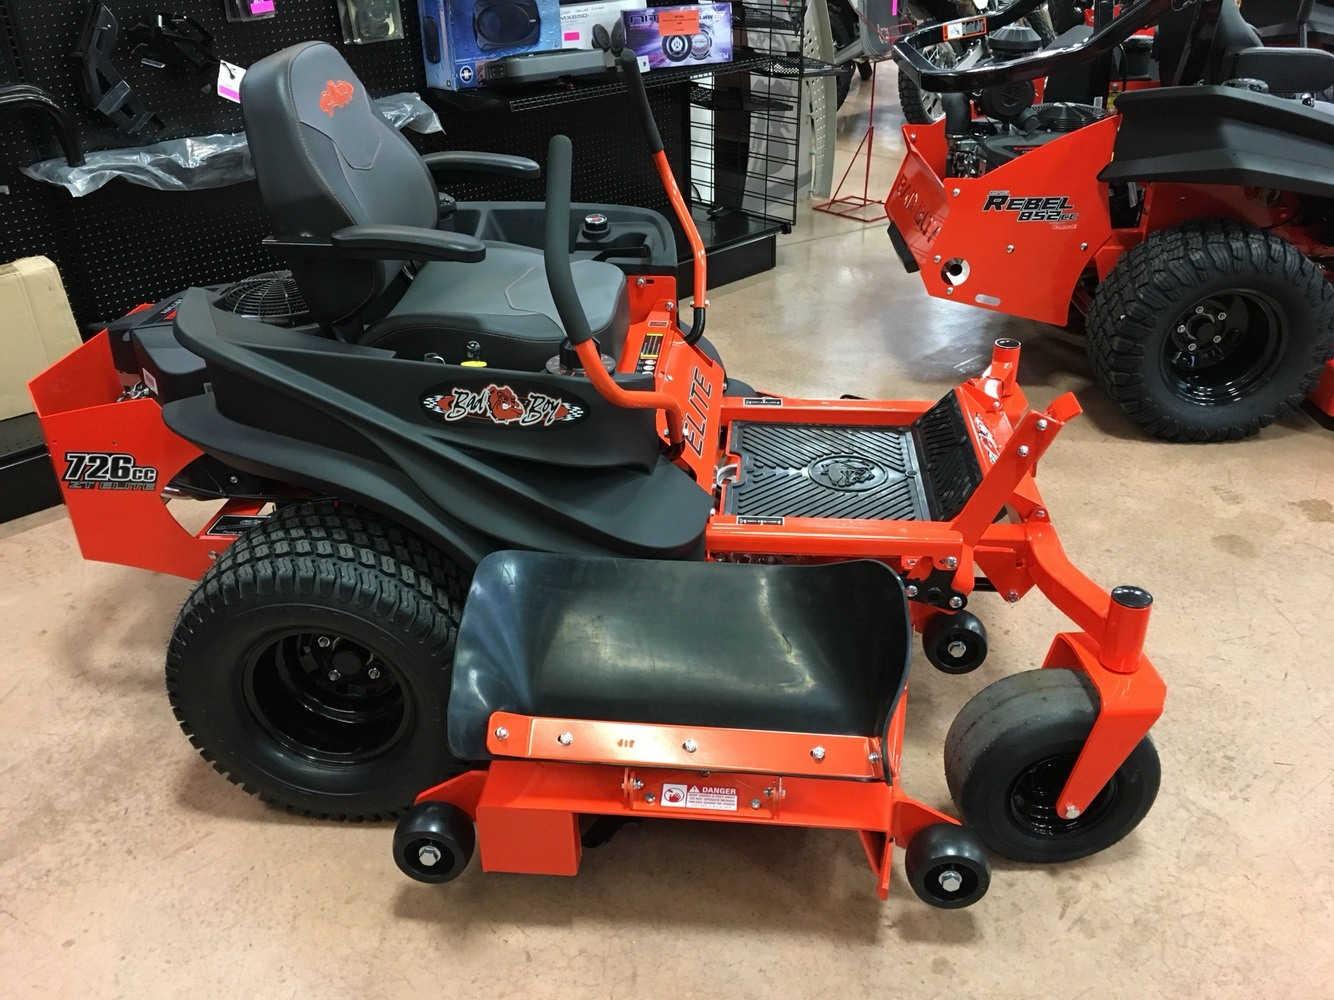 2019 Bad Boy Mowers ZT Elite 60 in. Kawasaki FR730 726 cc in Evansville, Indiana - Photo 4